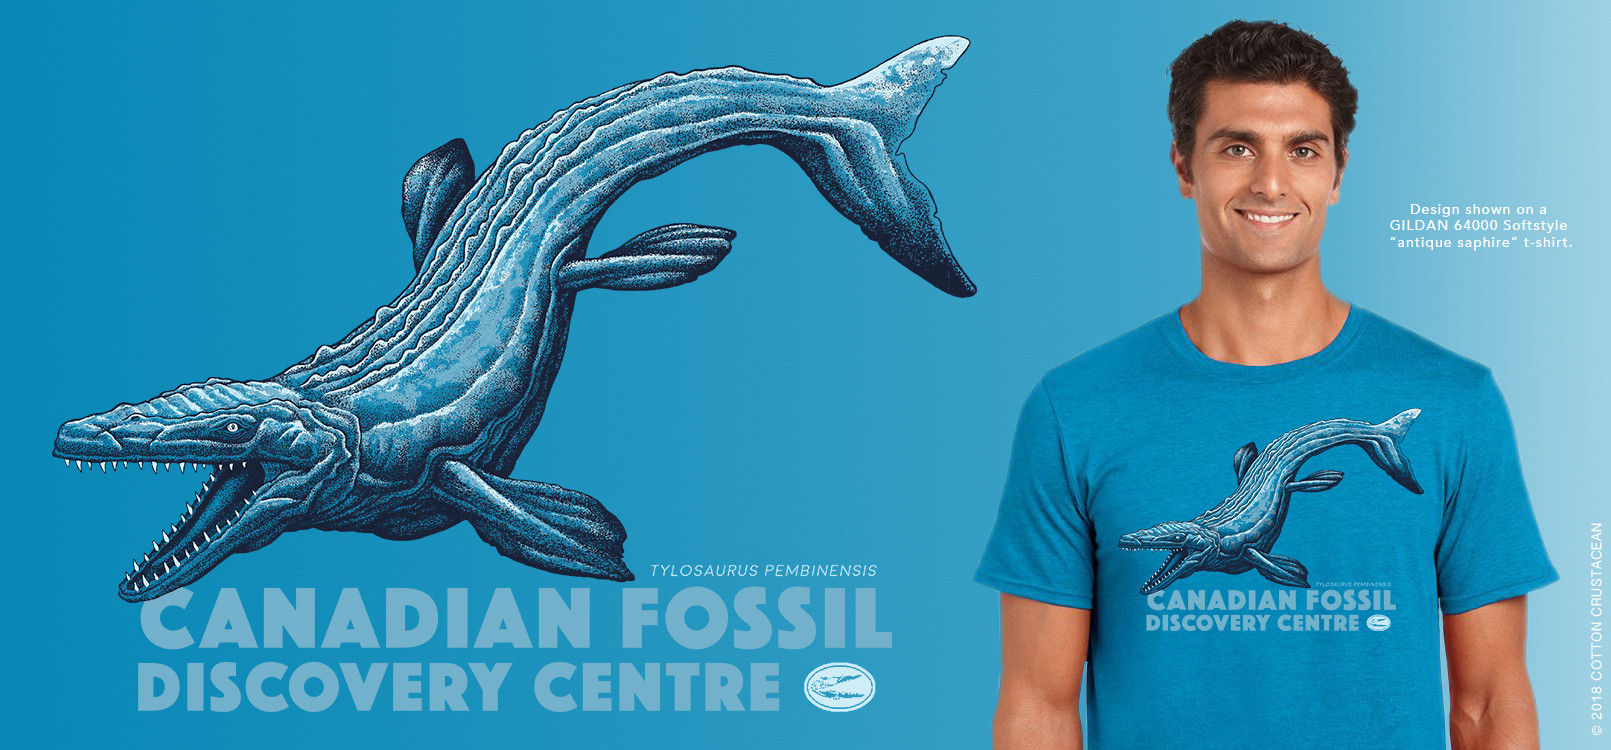 Canadian Fossil Discovery Centre